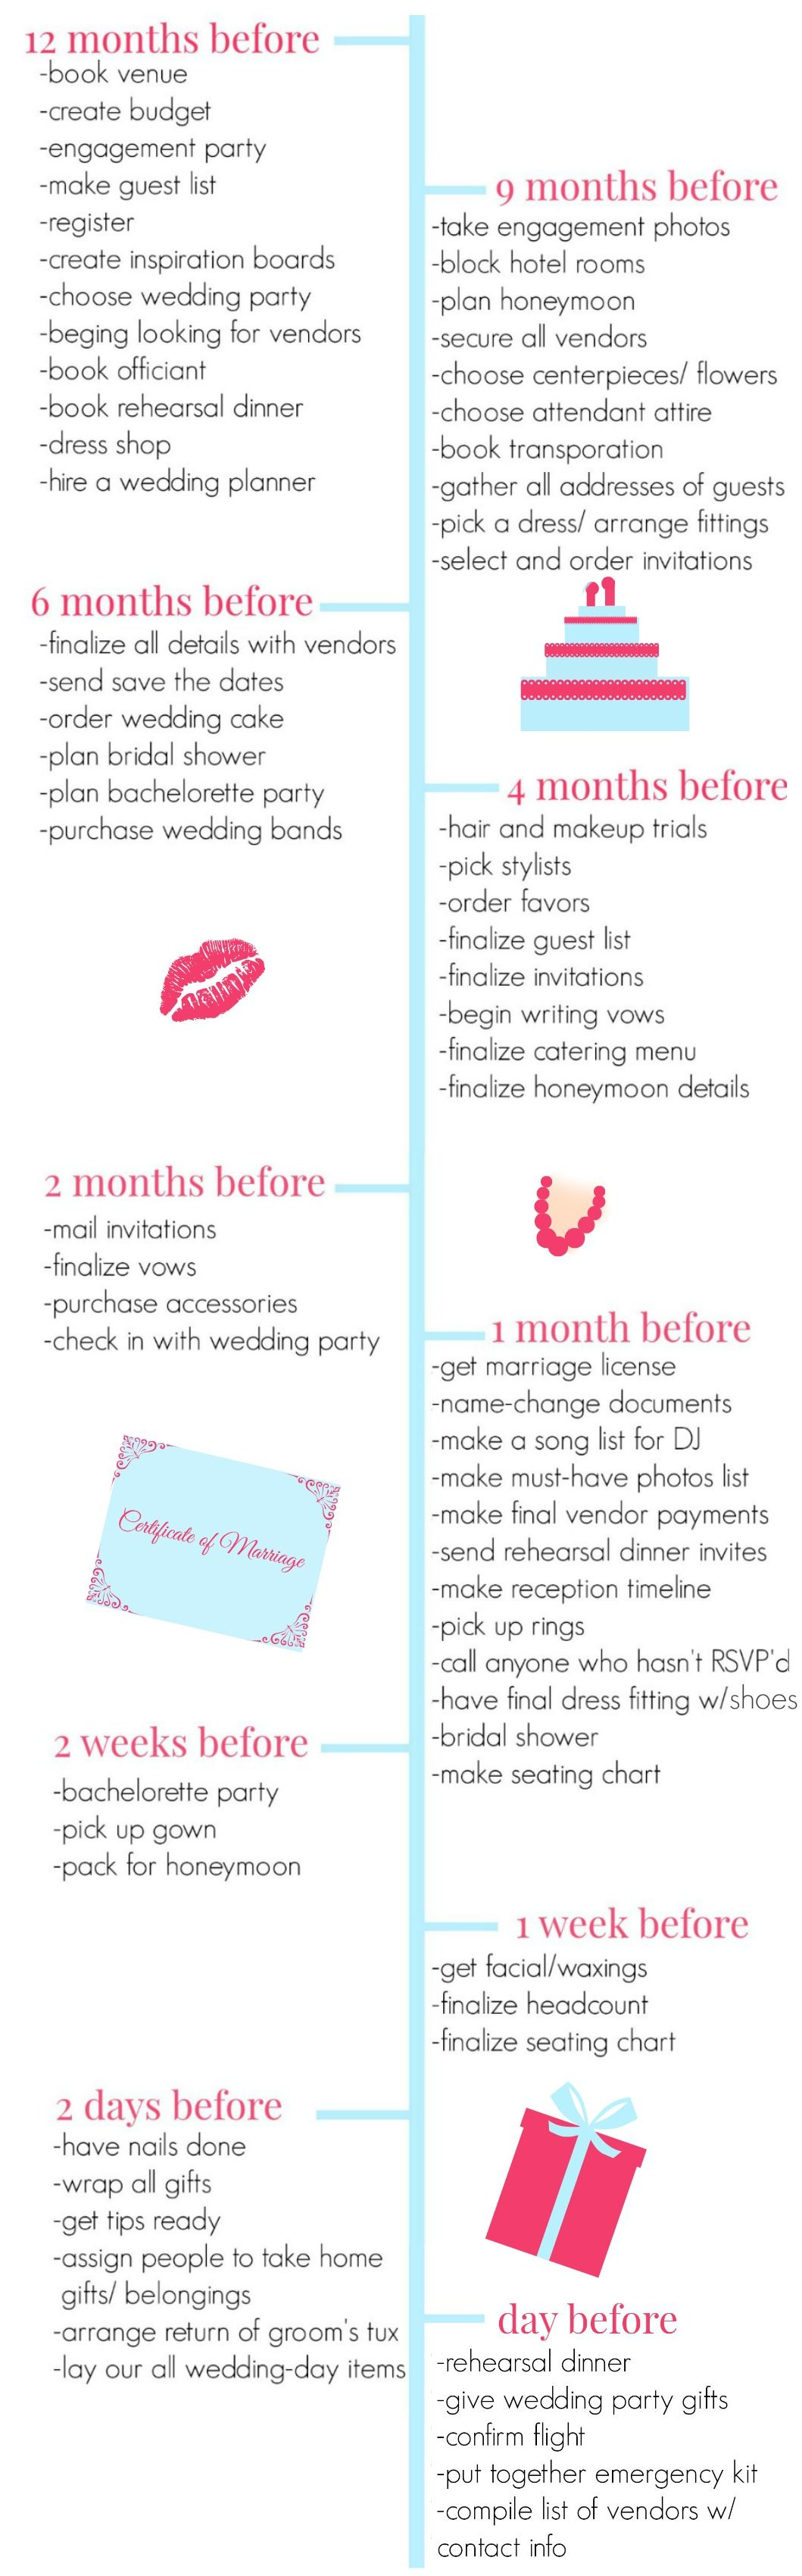 Wedding Planning Timeline  Timeline Amazing Things And Engagement